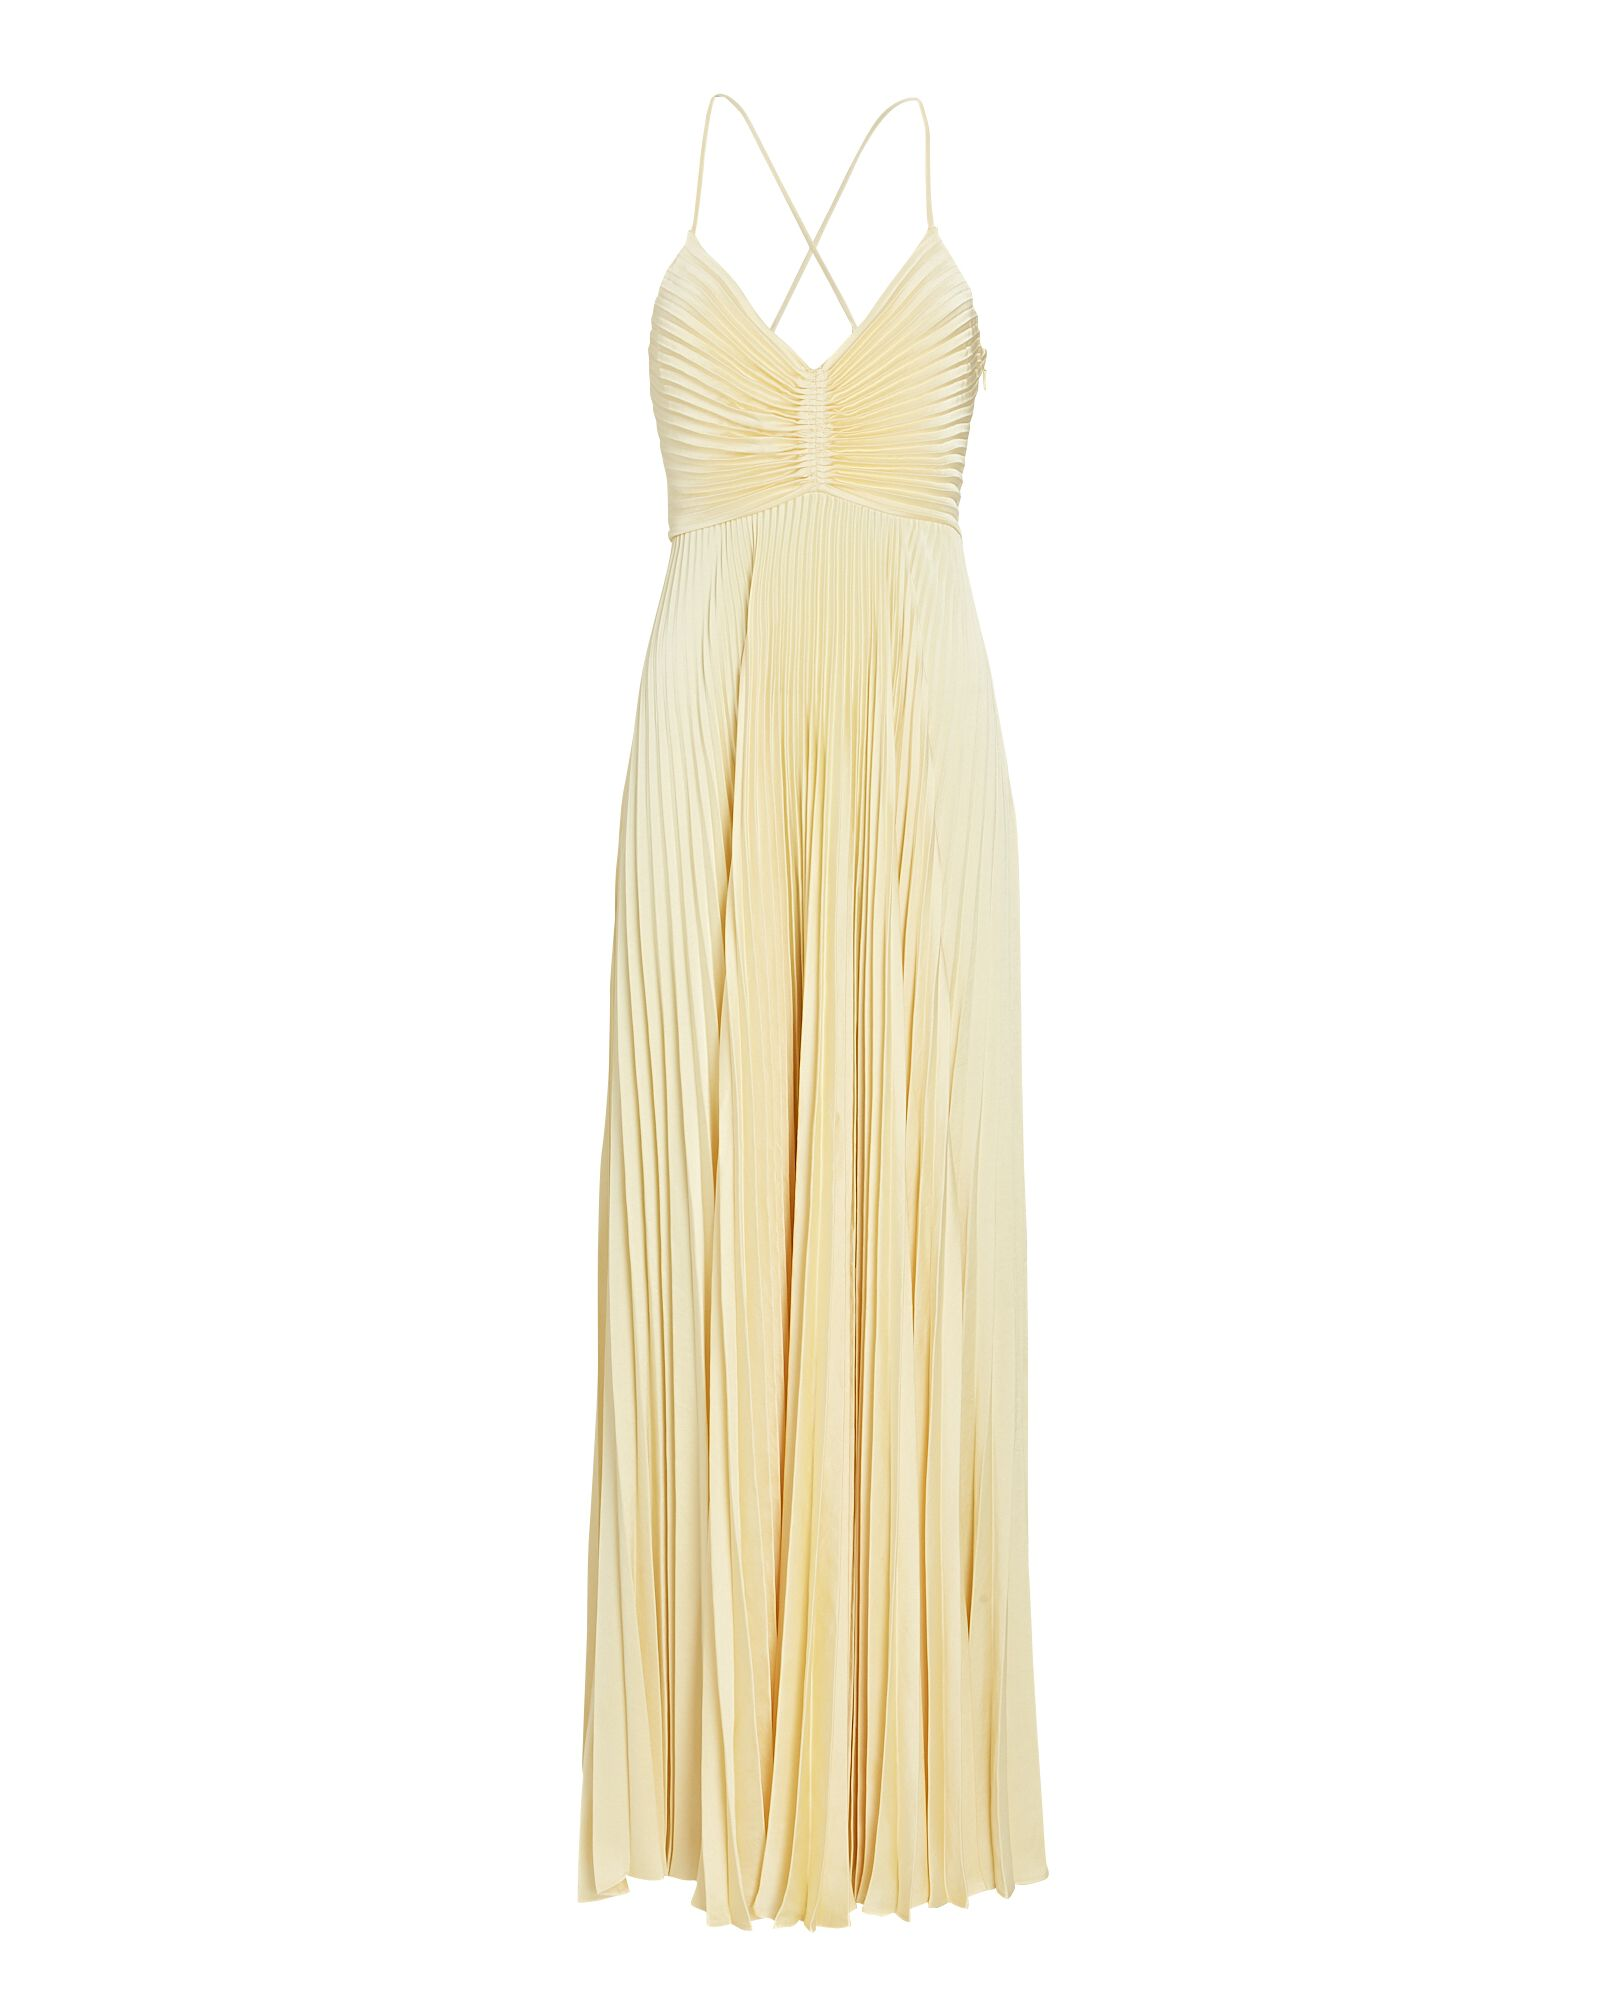 Aries Pleated Cut-Out Gown, YELLOW, hi-res